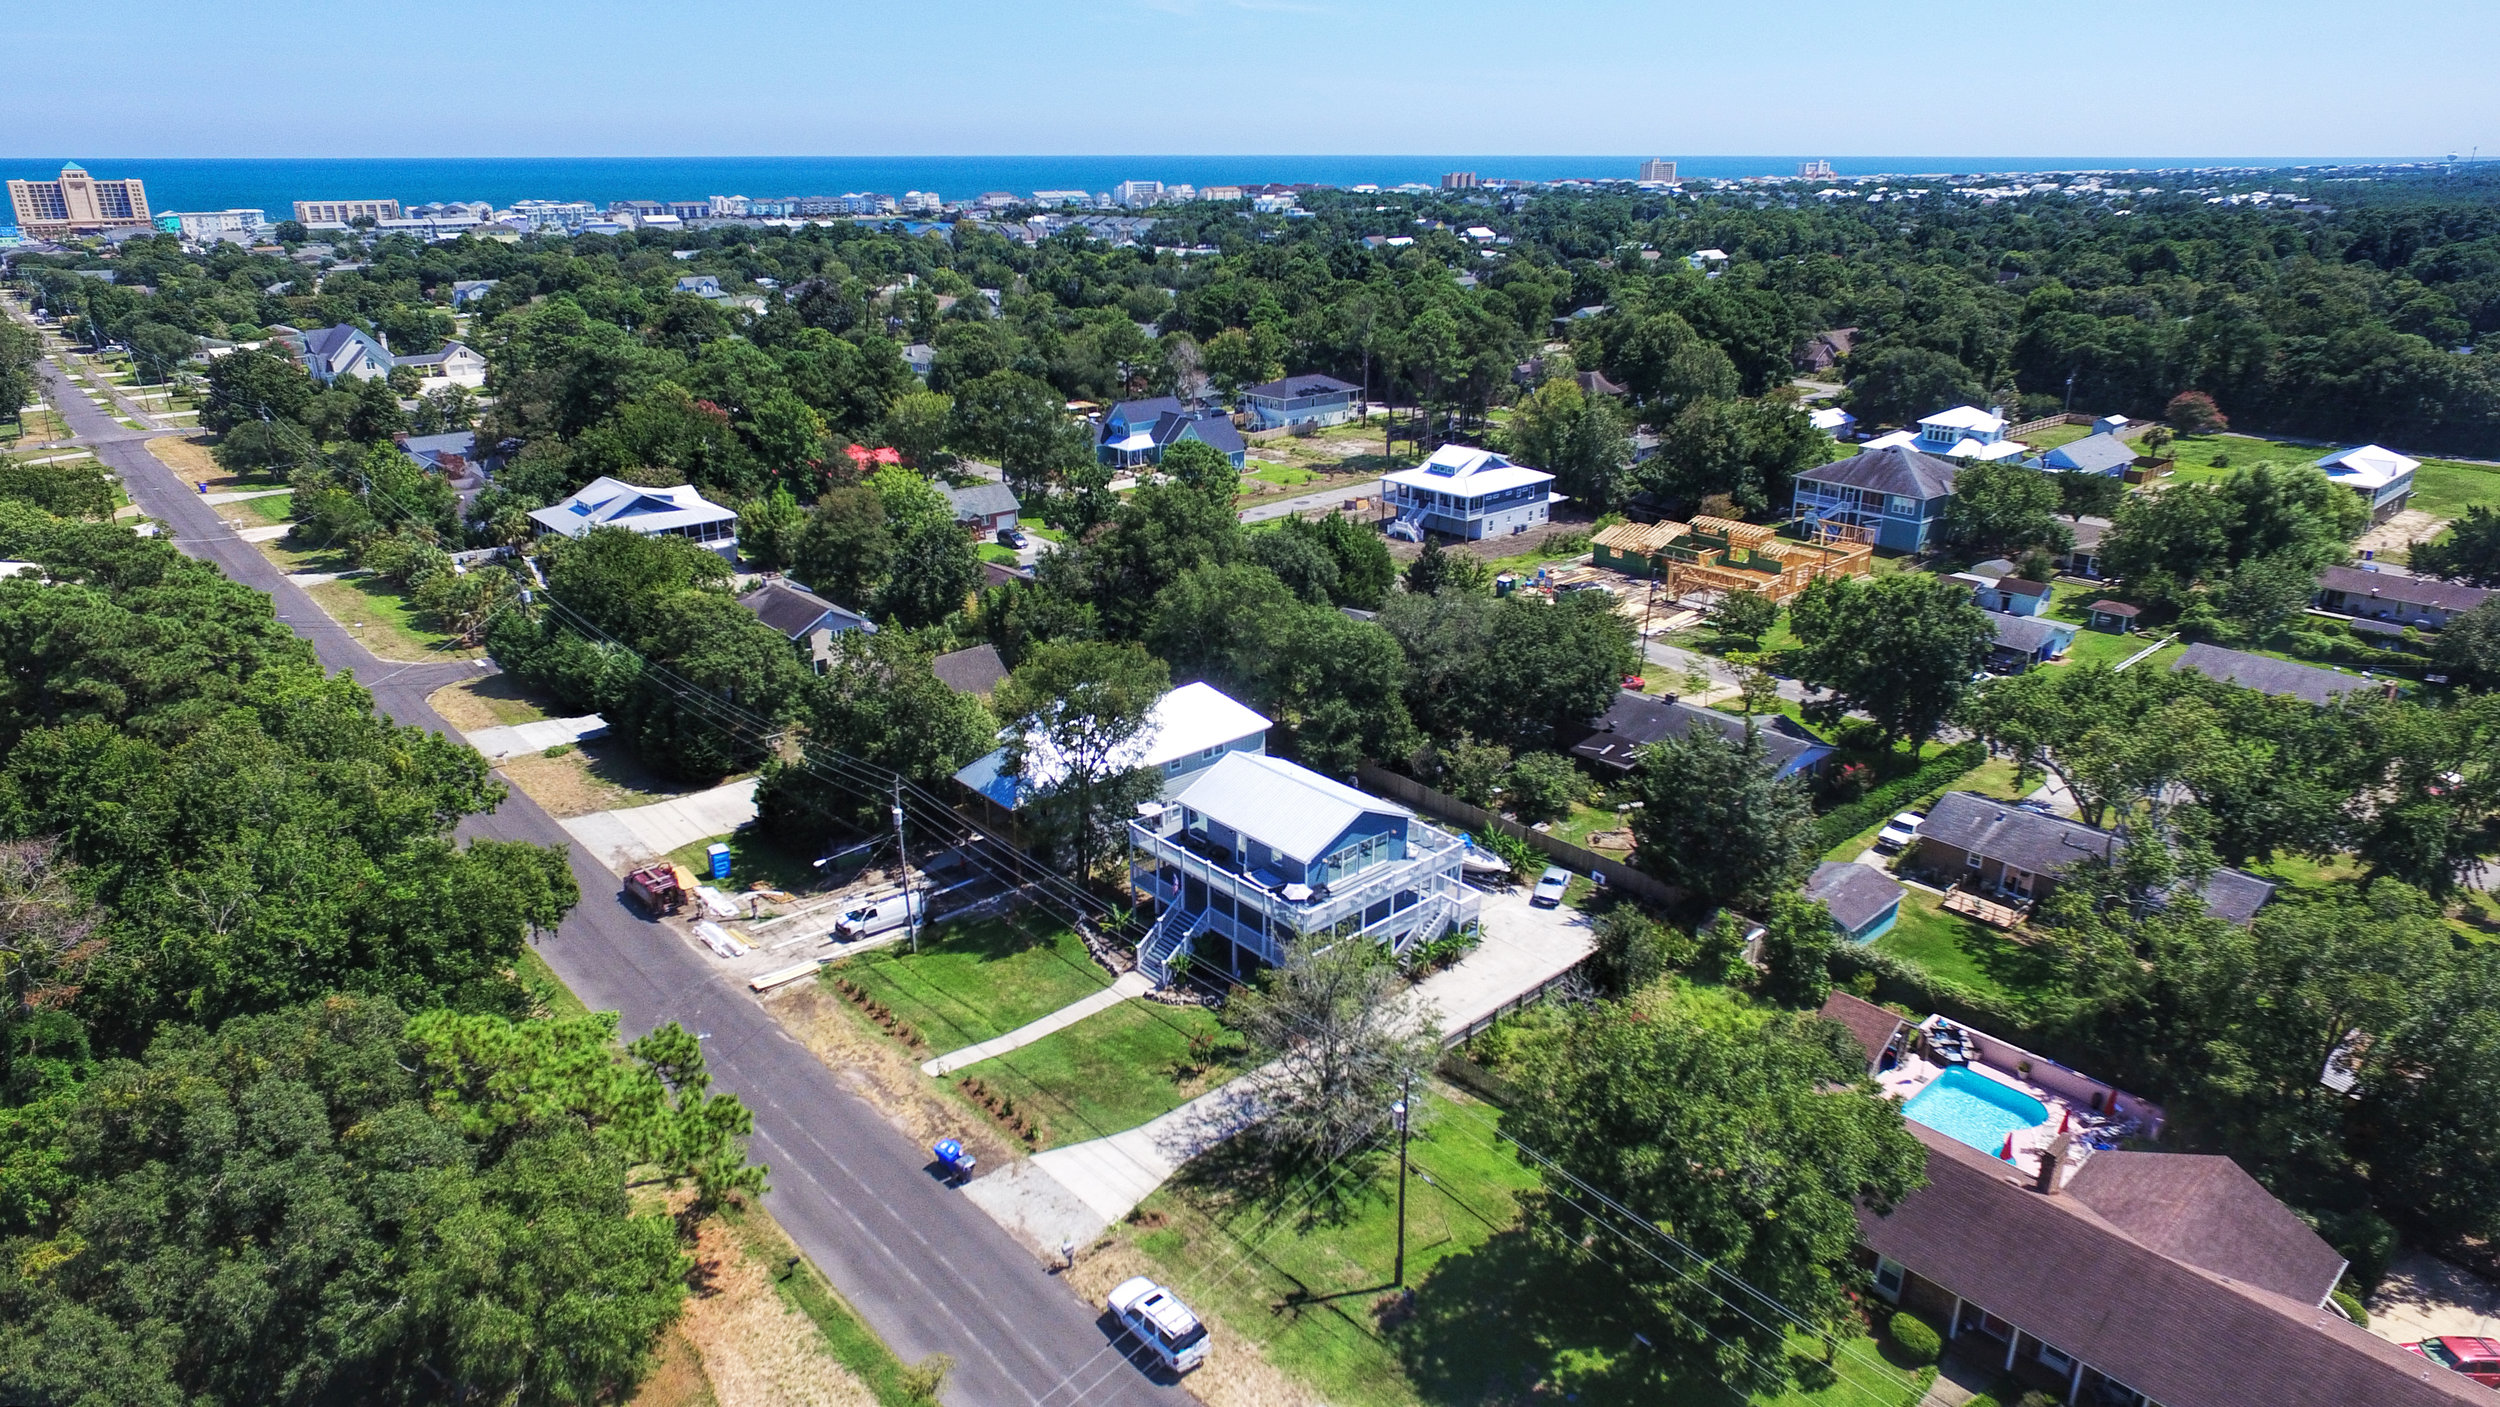 709 Cape Fear Blvd Carolina-print-034-6-5-3885x2186-300dpi.jpg